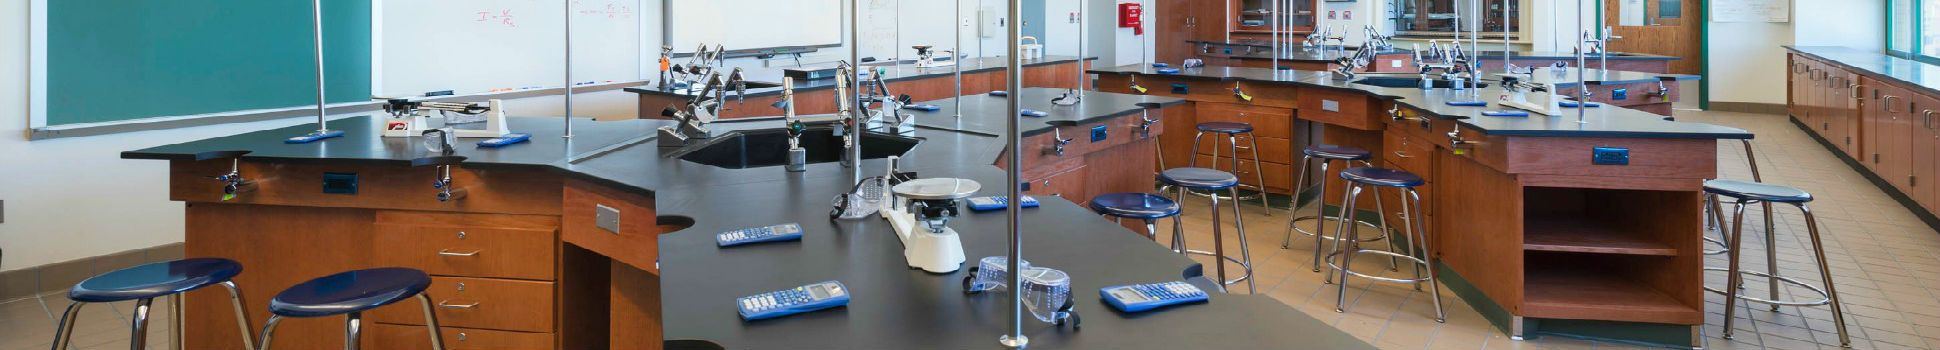 All City Leadership Secondary School Science Lab - Brooklyn